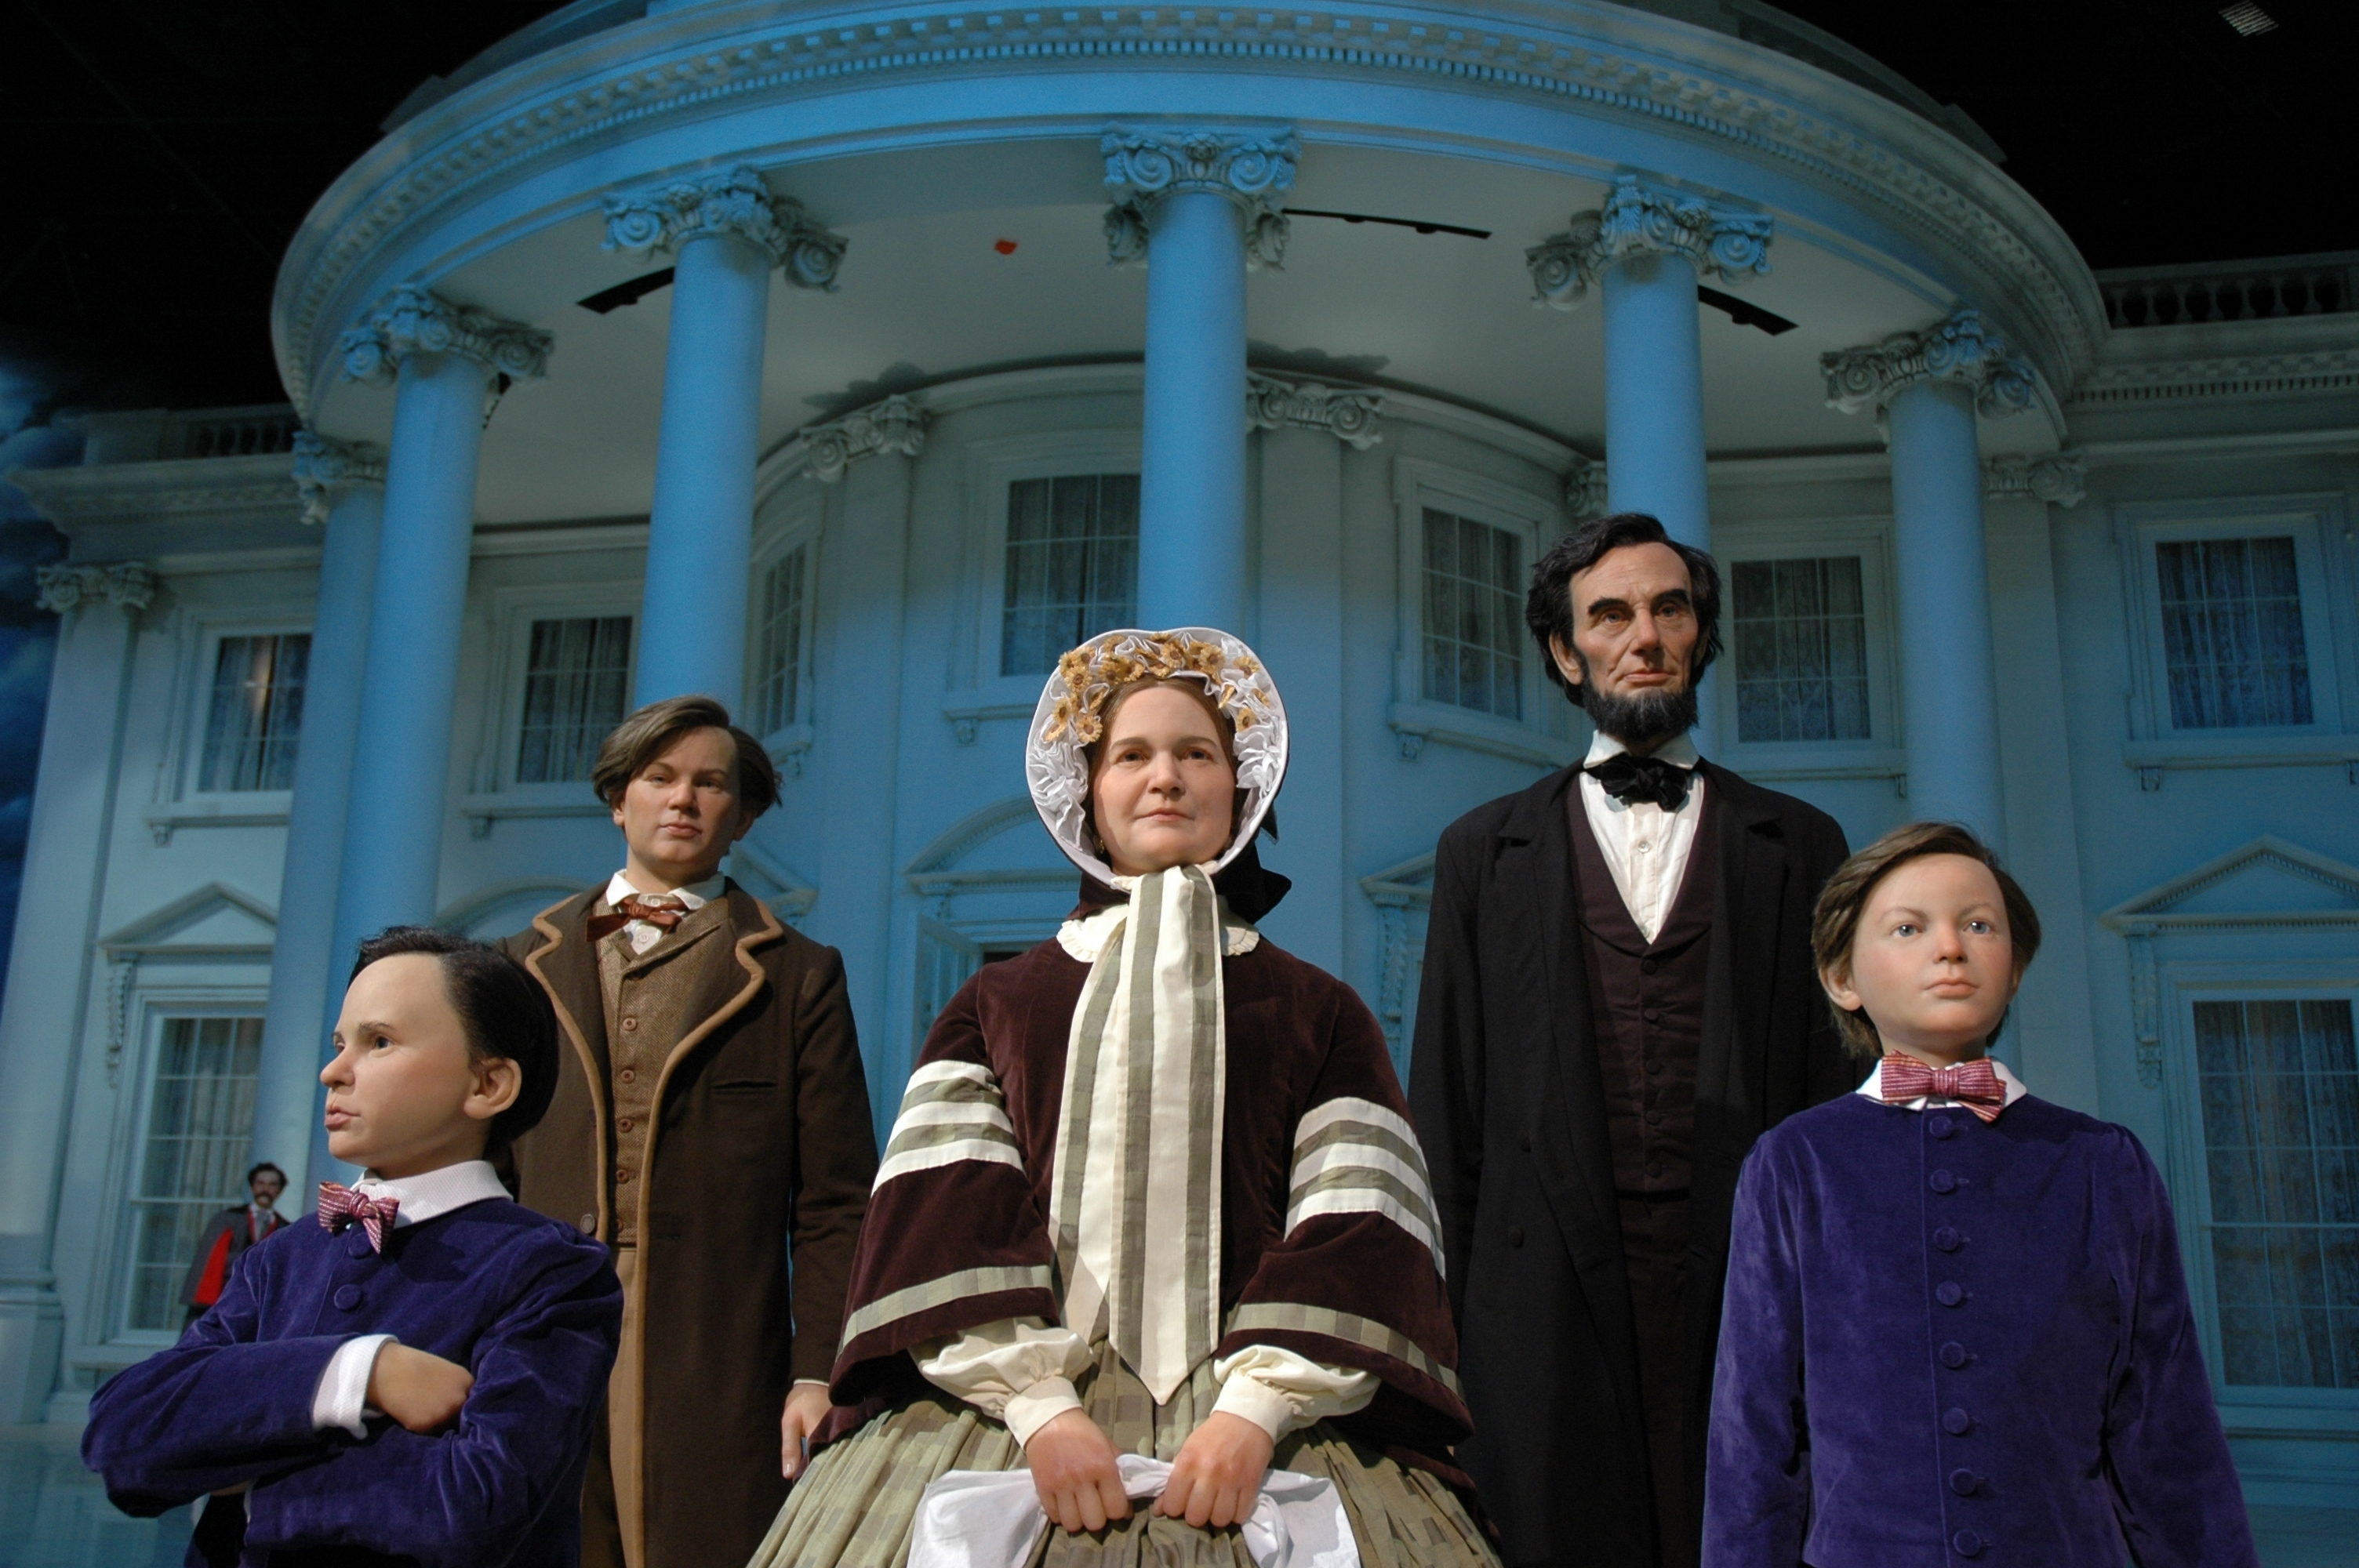 Sites Amp Attractions Abraham Lincoln Presidential Museum